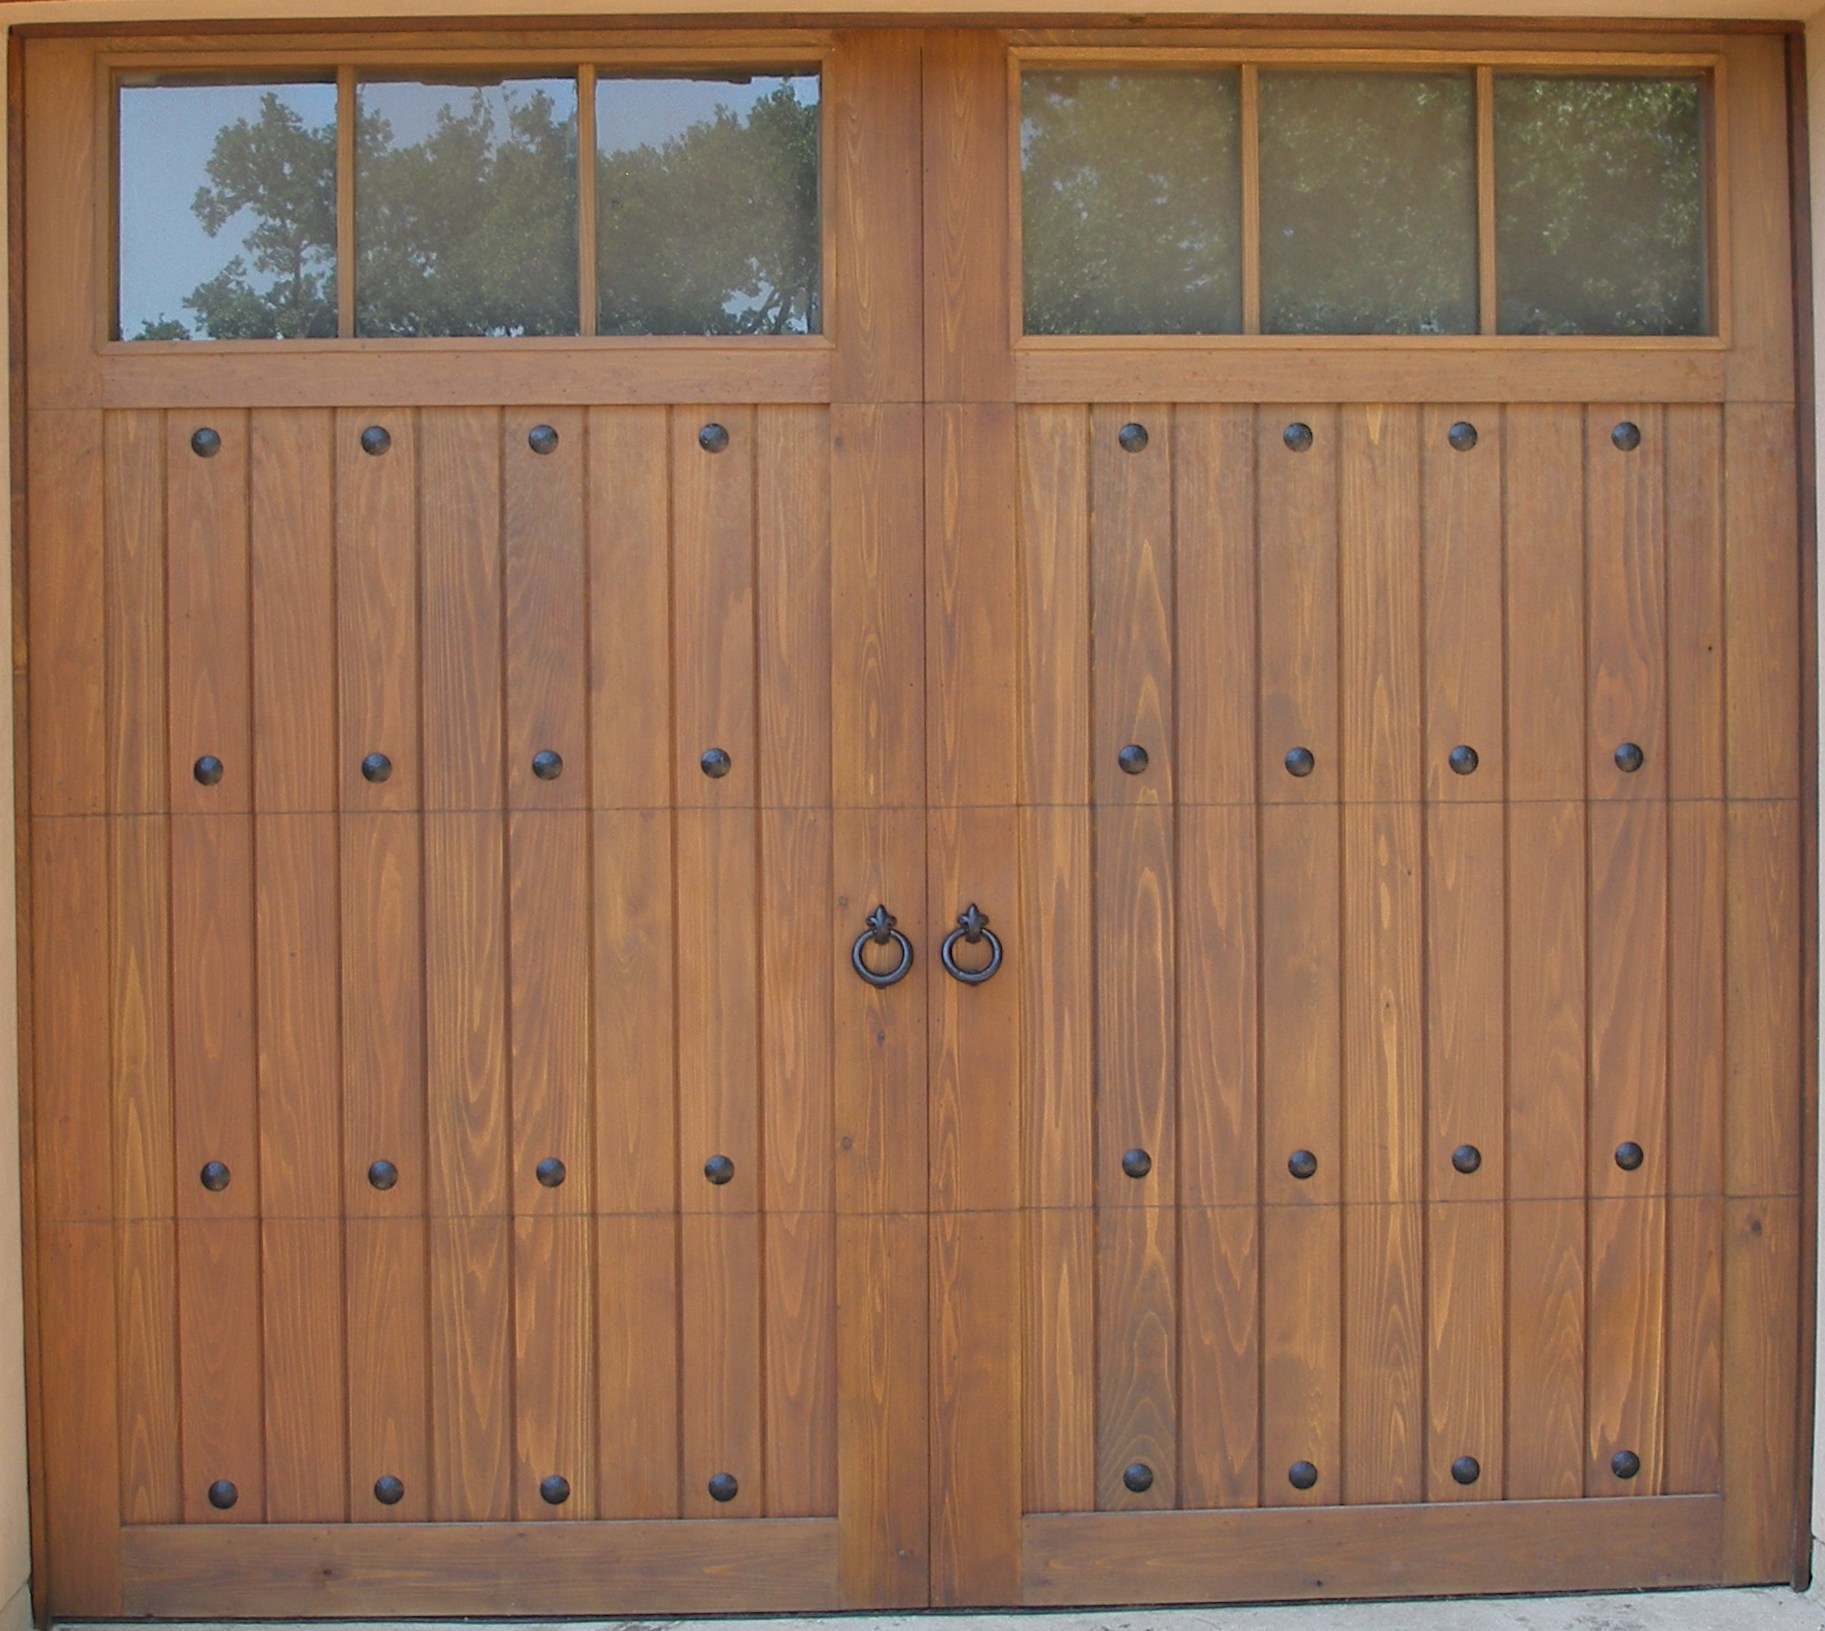 1631 #734B32 This Custom Cedar Garage Door With Windows And Decorative Hardware Was  picture/photo Entry Doors San Antonio 38991825